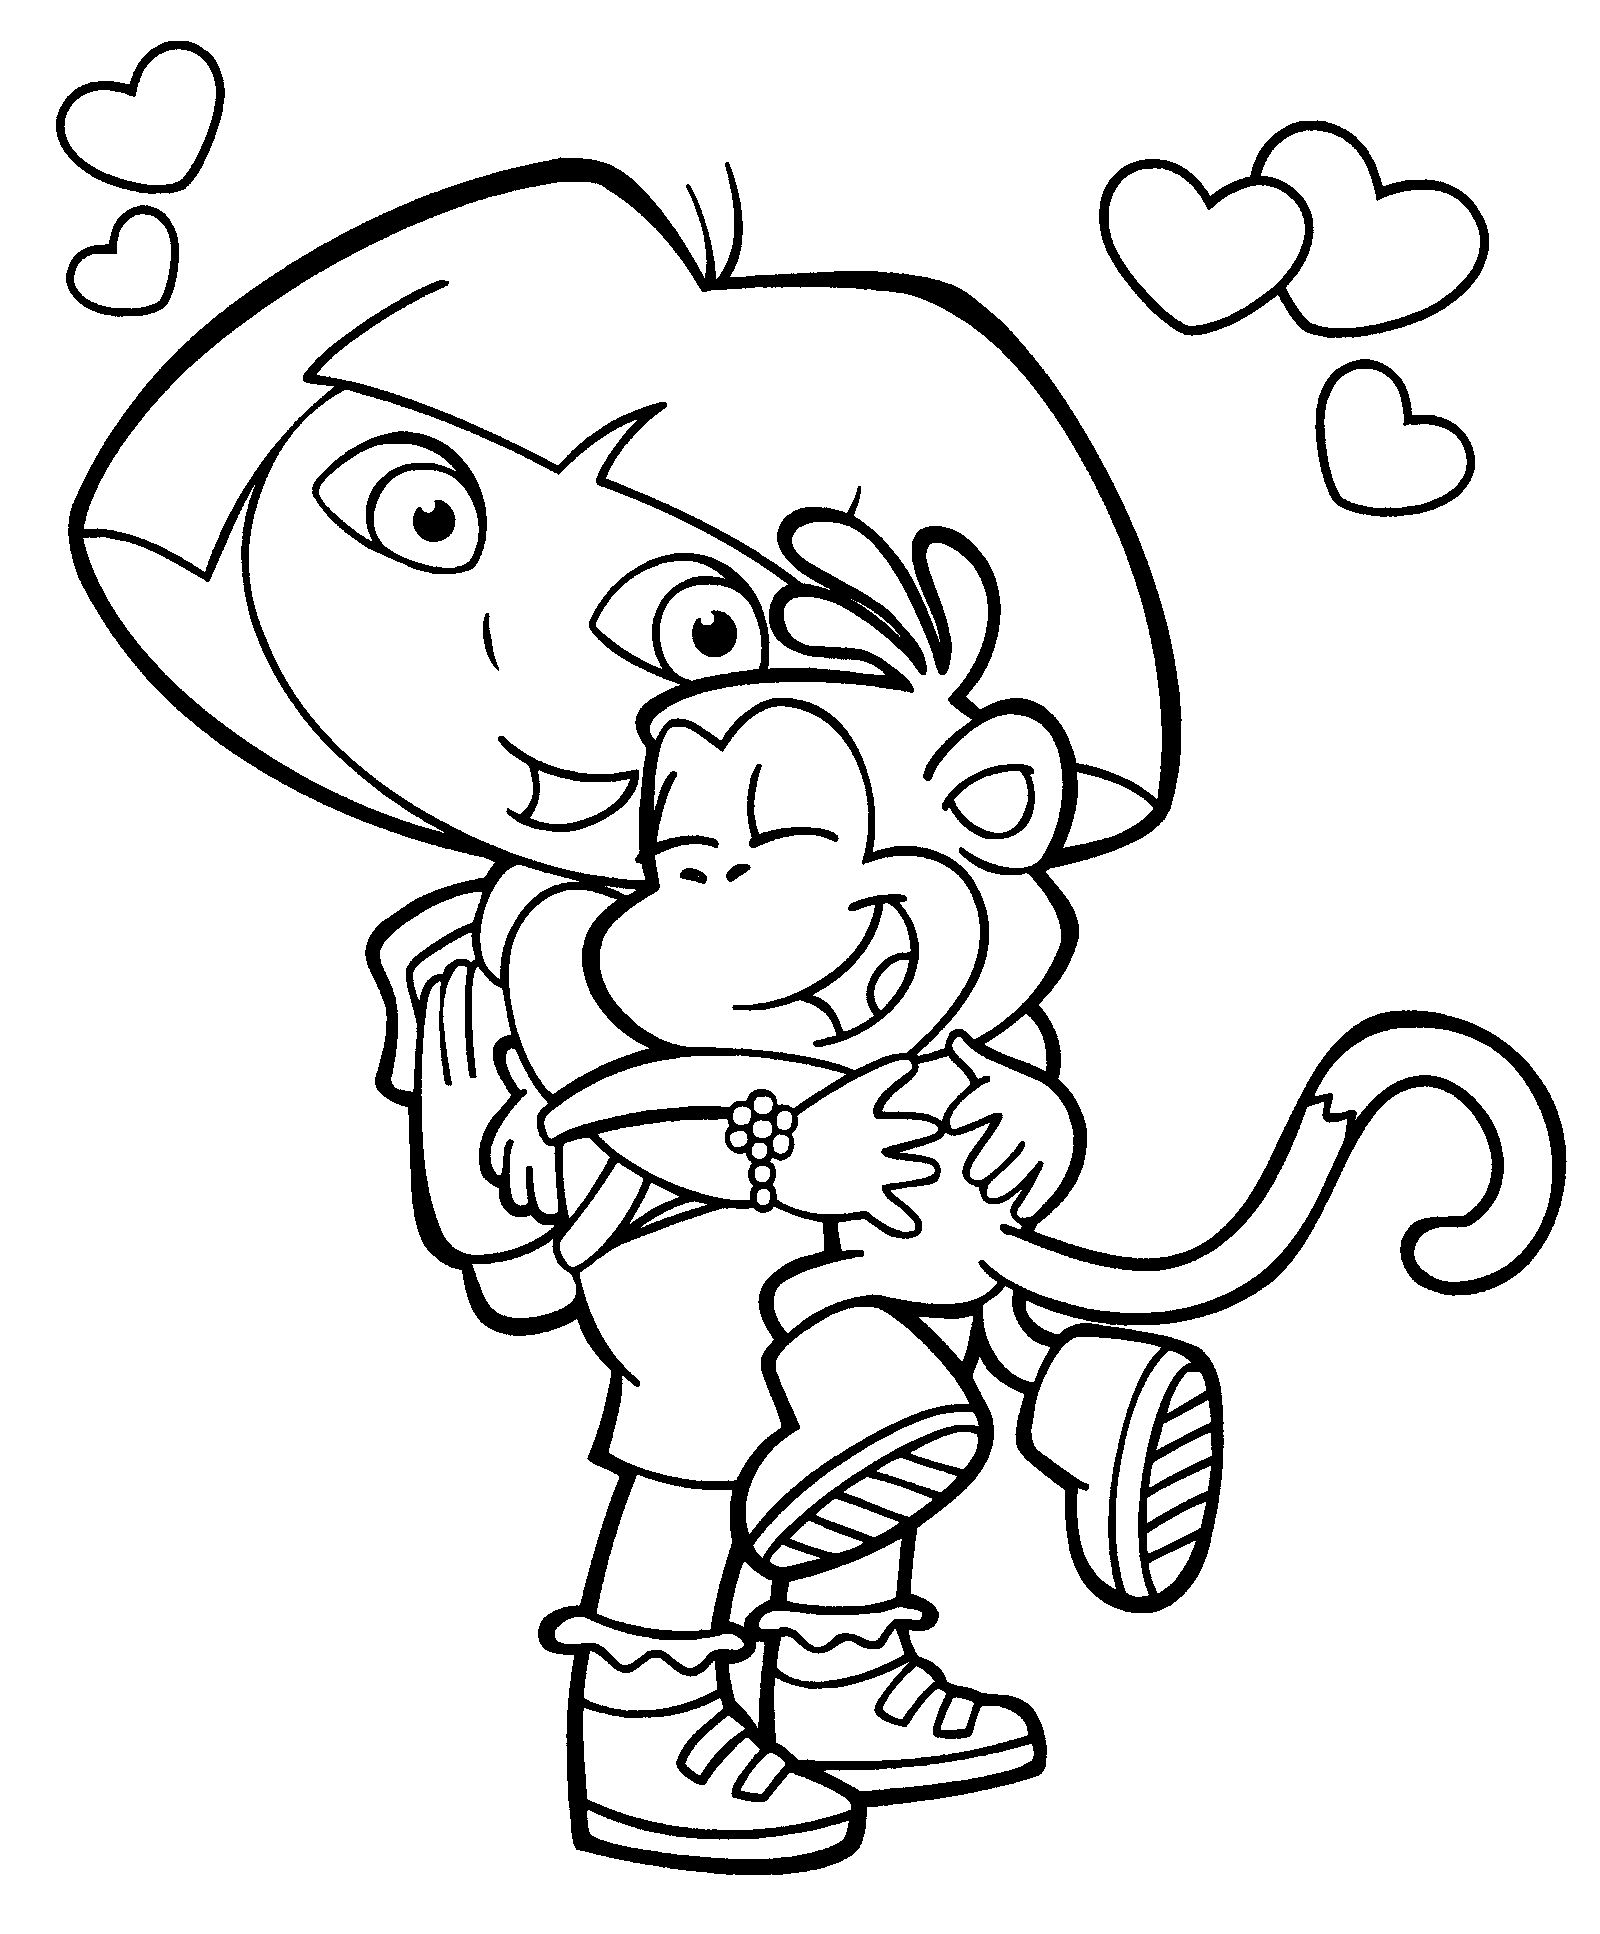 Free coloring page dora